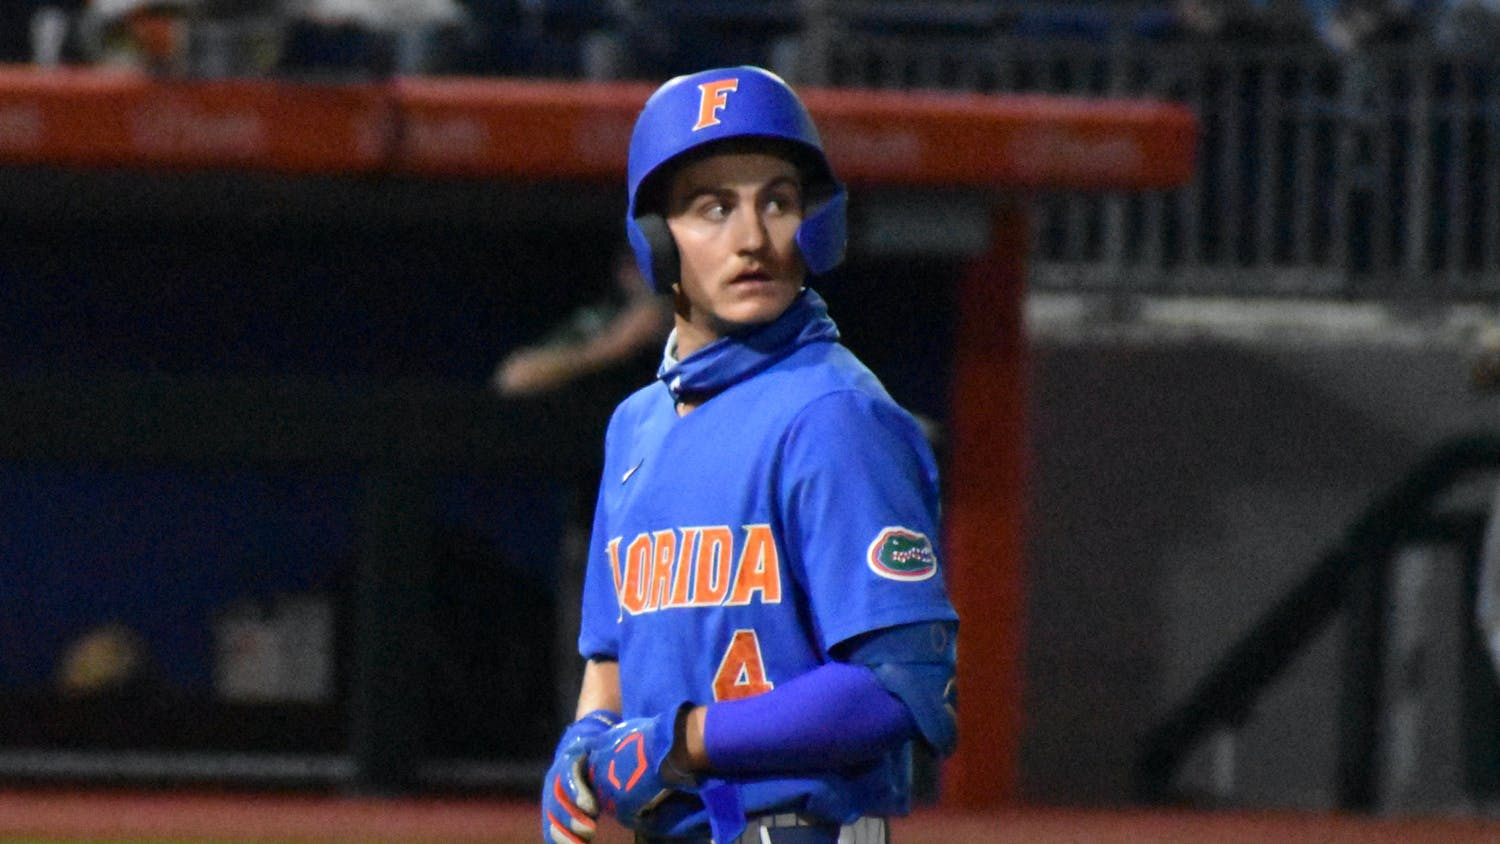 Fabian's solo shot — his team-leading eighth home run this season — added an insurance run to give the Gators a 7-3 advantage. Photo from UF-Jacksonville March 13.